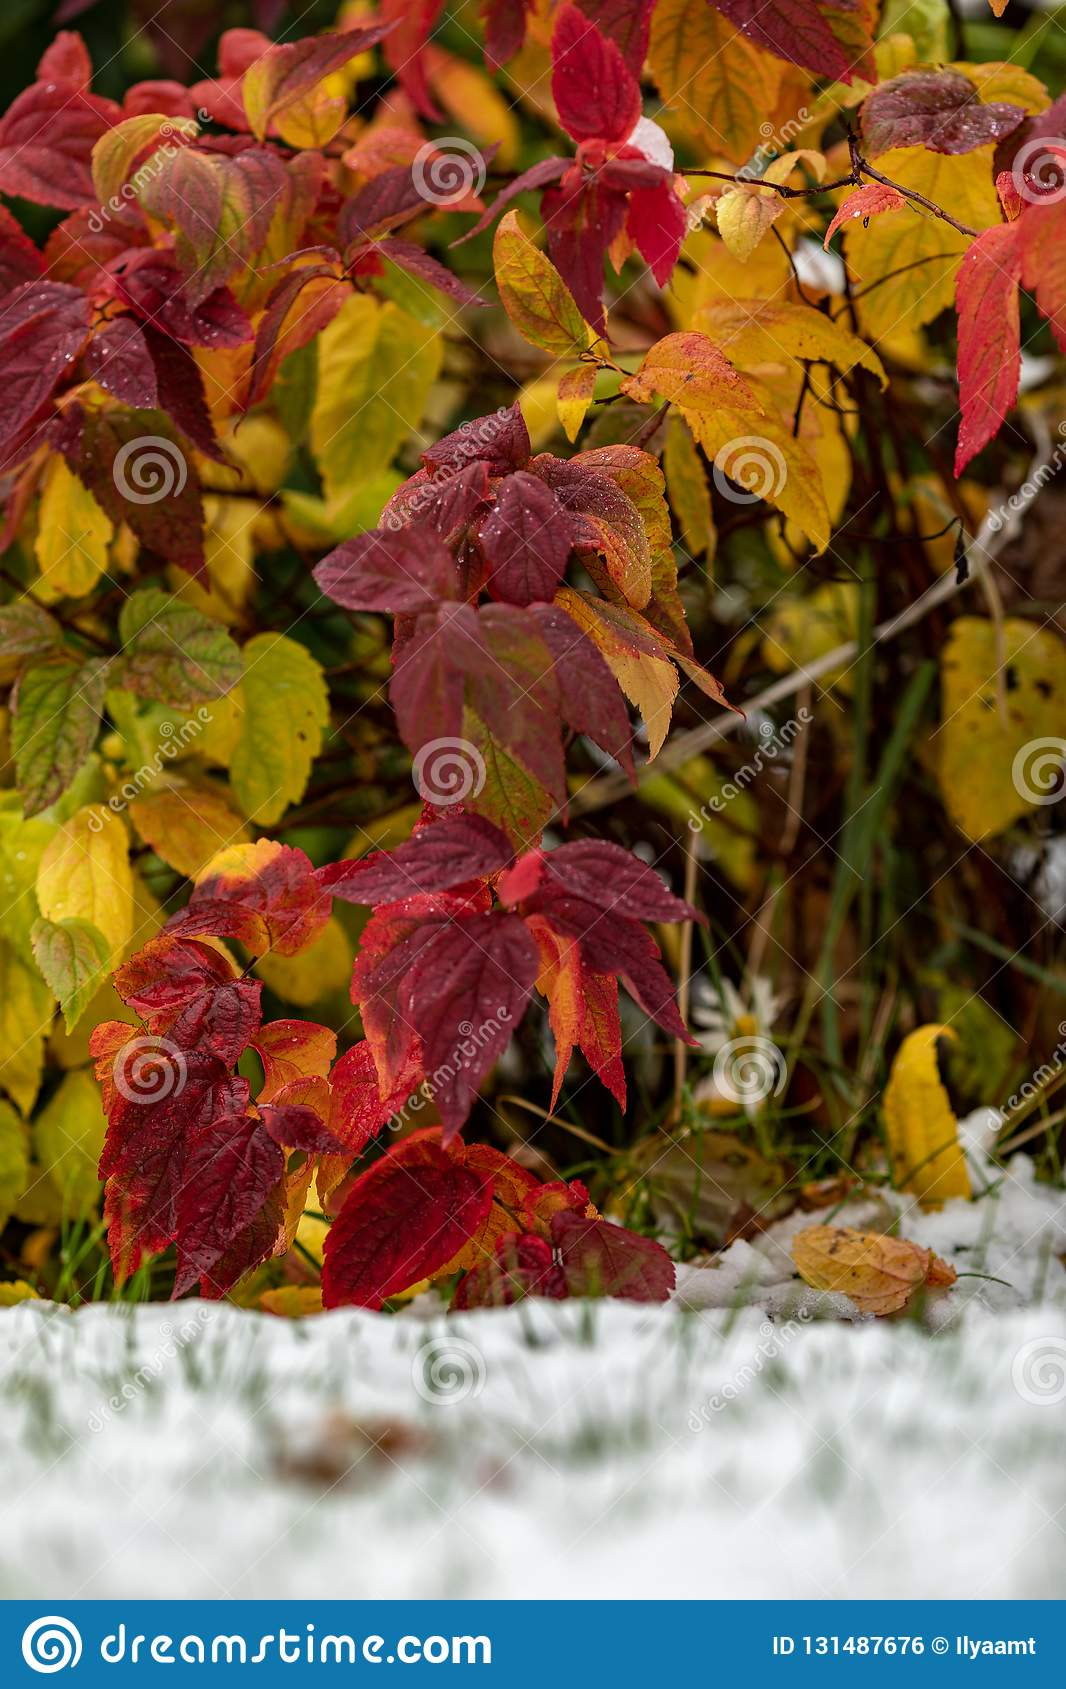 Autumn Bright Red Orange Yellow And Green Leaves Are